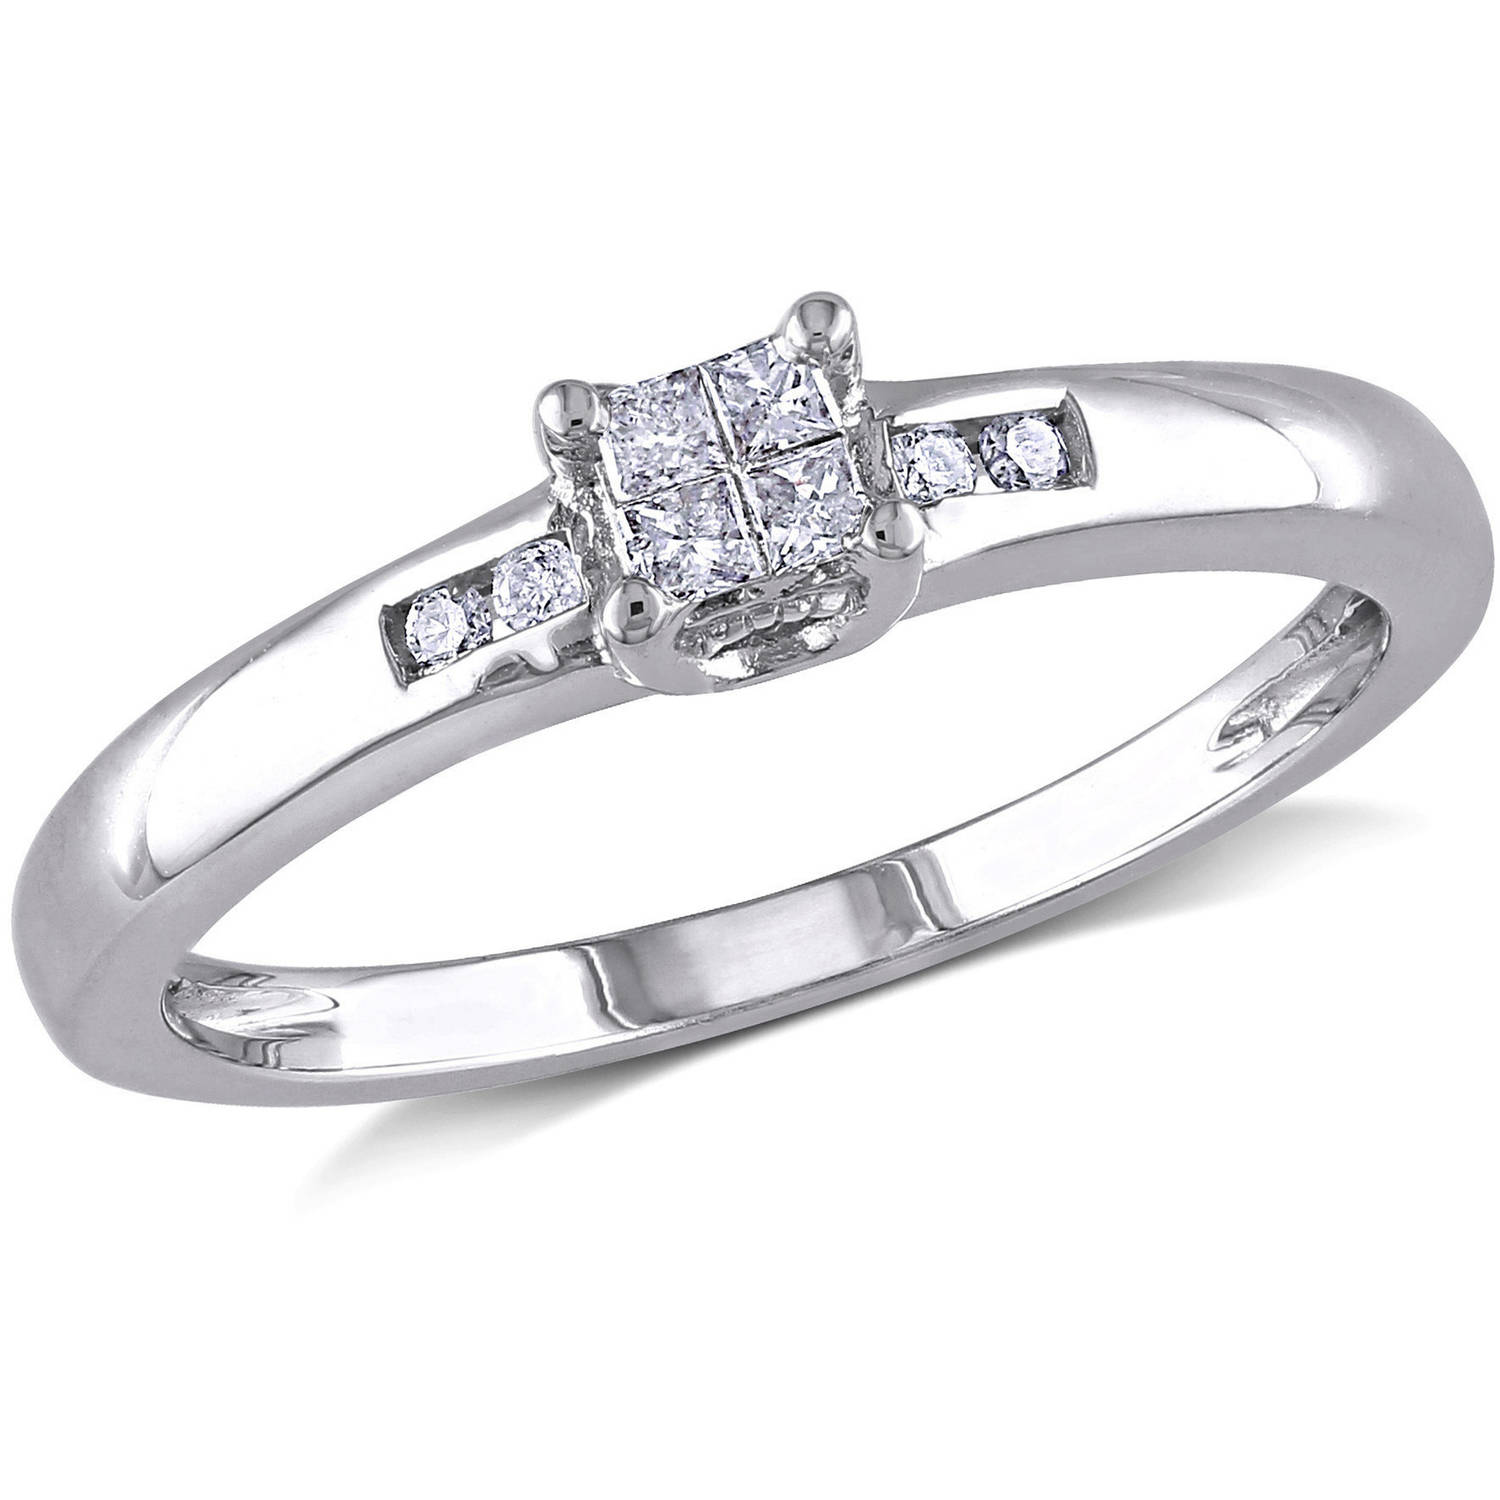 Miabella 1/8 Carat T.W. Princess and Round-Cut Diamond Sterling Silver Engagement Ring